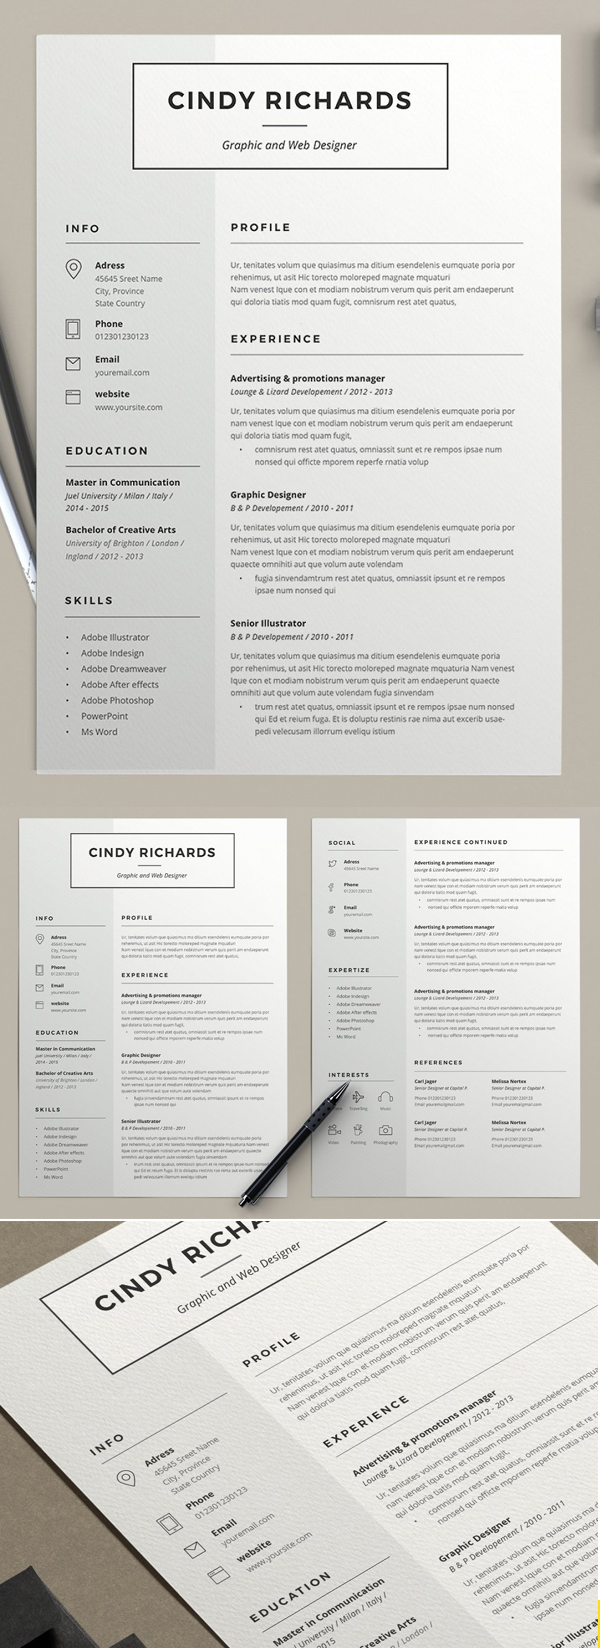 Resume Cindy (2 pages)